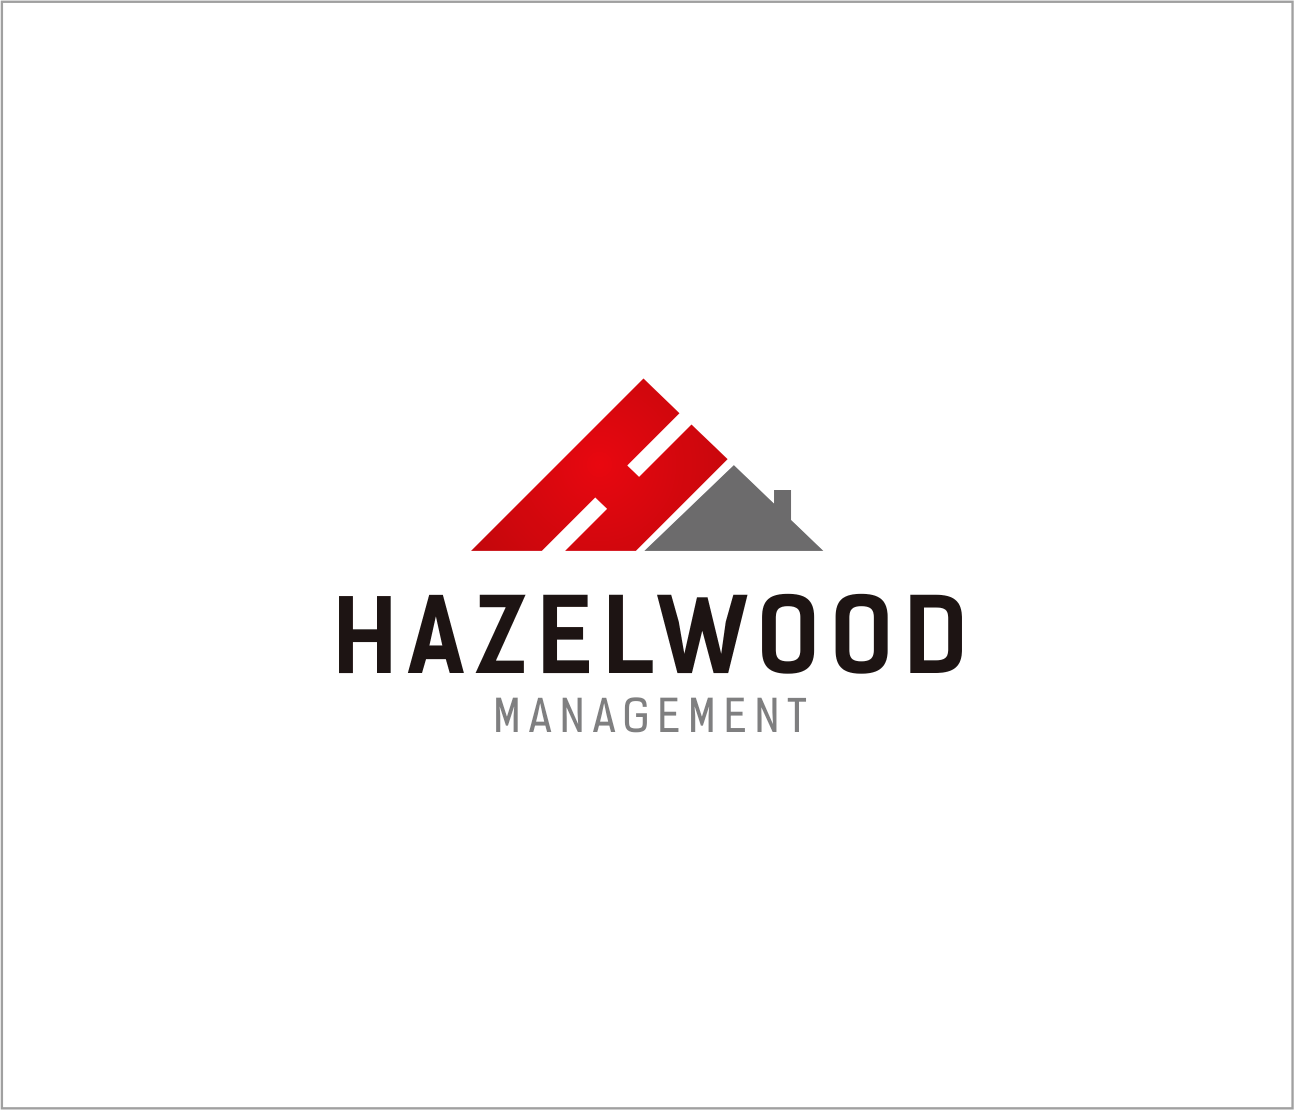 Logo Design by Armada Jamaluddin - Entry No. 119 in the Logo Design Contest Hazelwood Management LLC Logo Design.